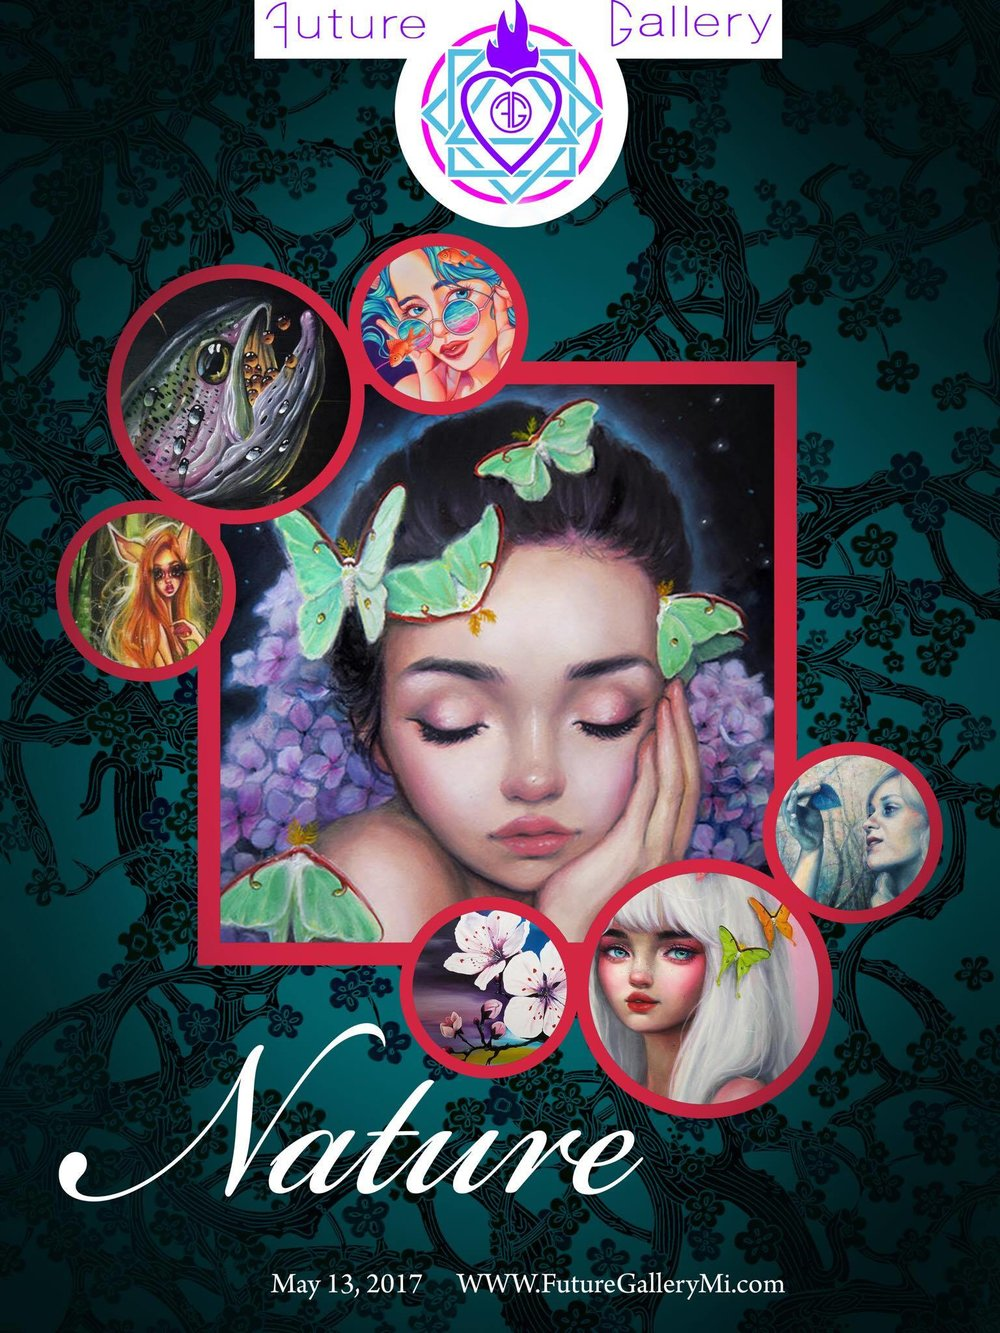 Nature - Future Gallery Presents